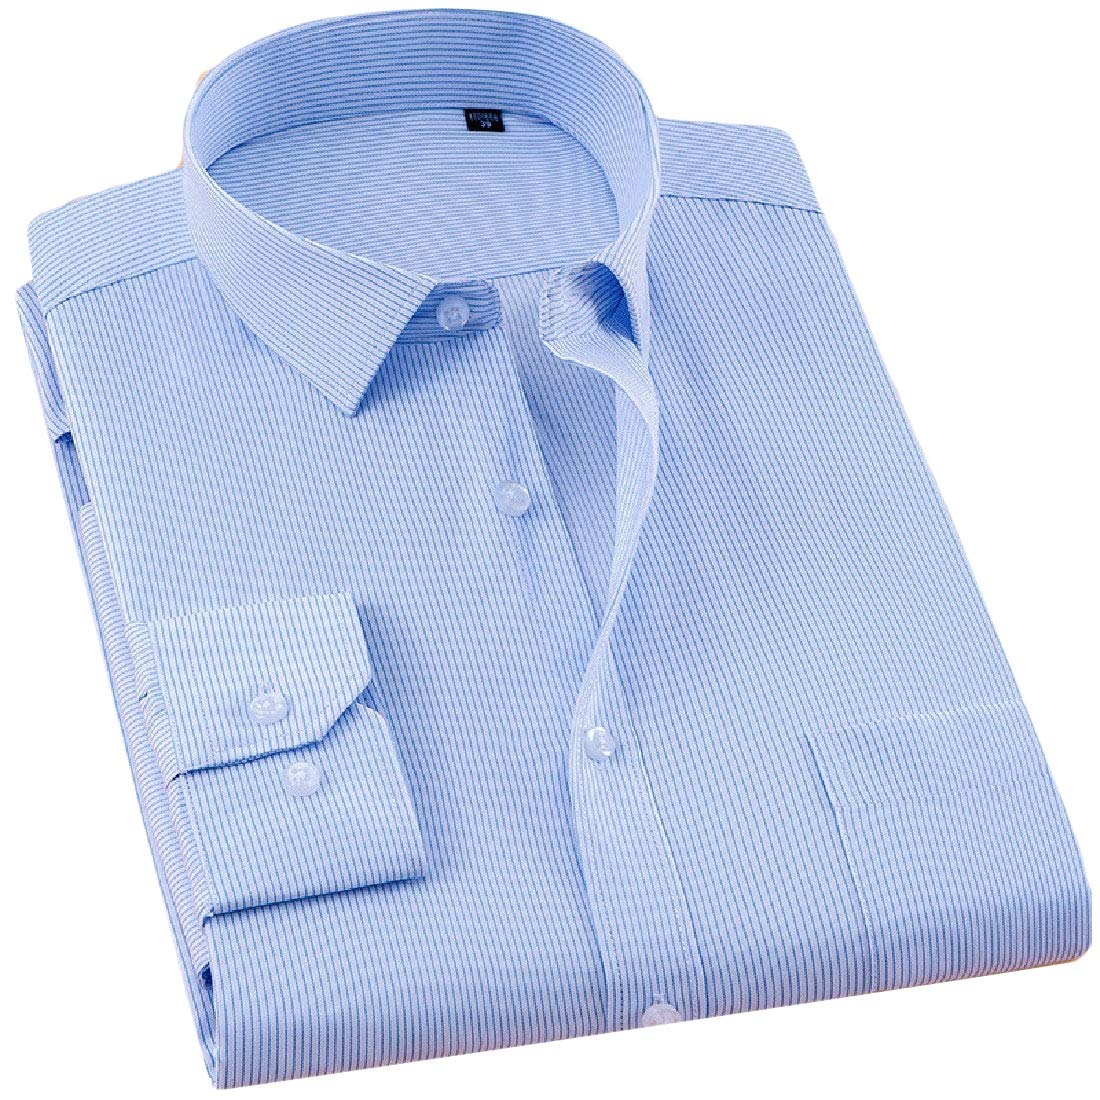 RSunshine Mens Long Sleeve Business Pure Color Button Down Office Work Shirts